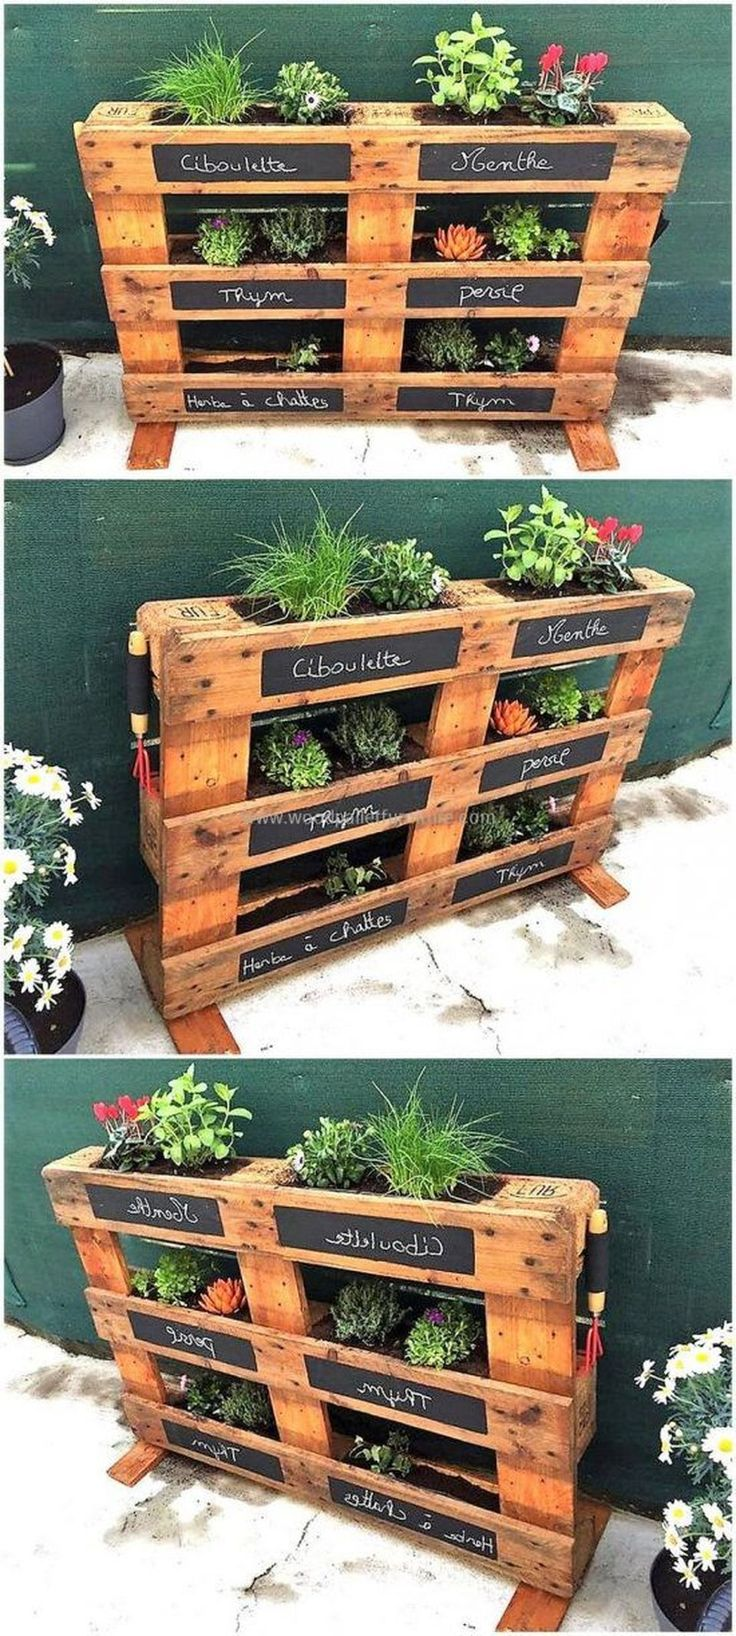 nice garden ideas with wooden pallets 8